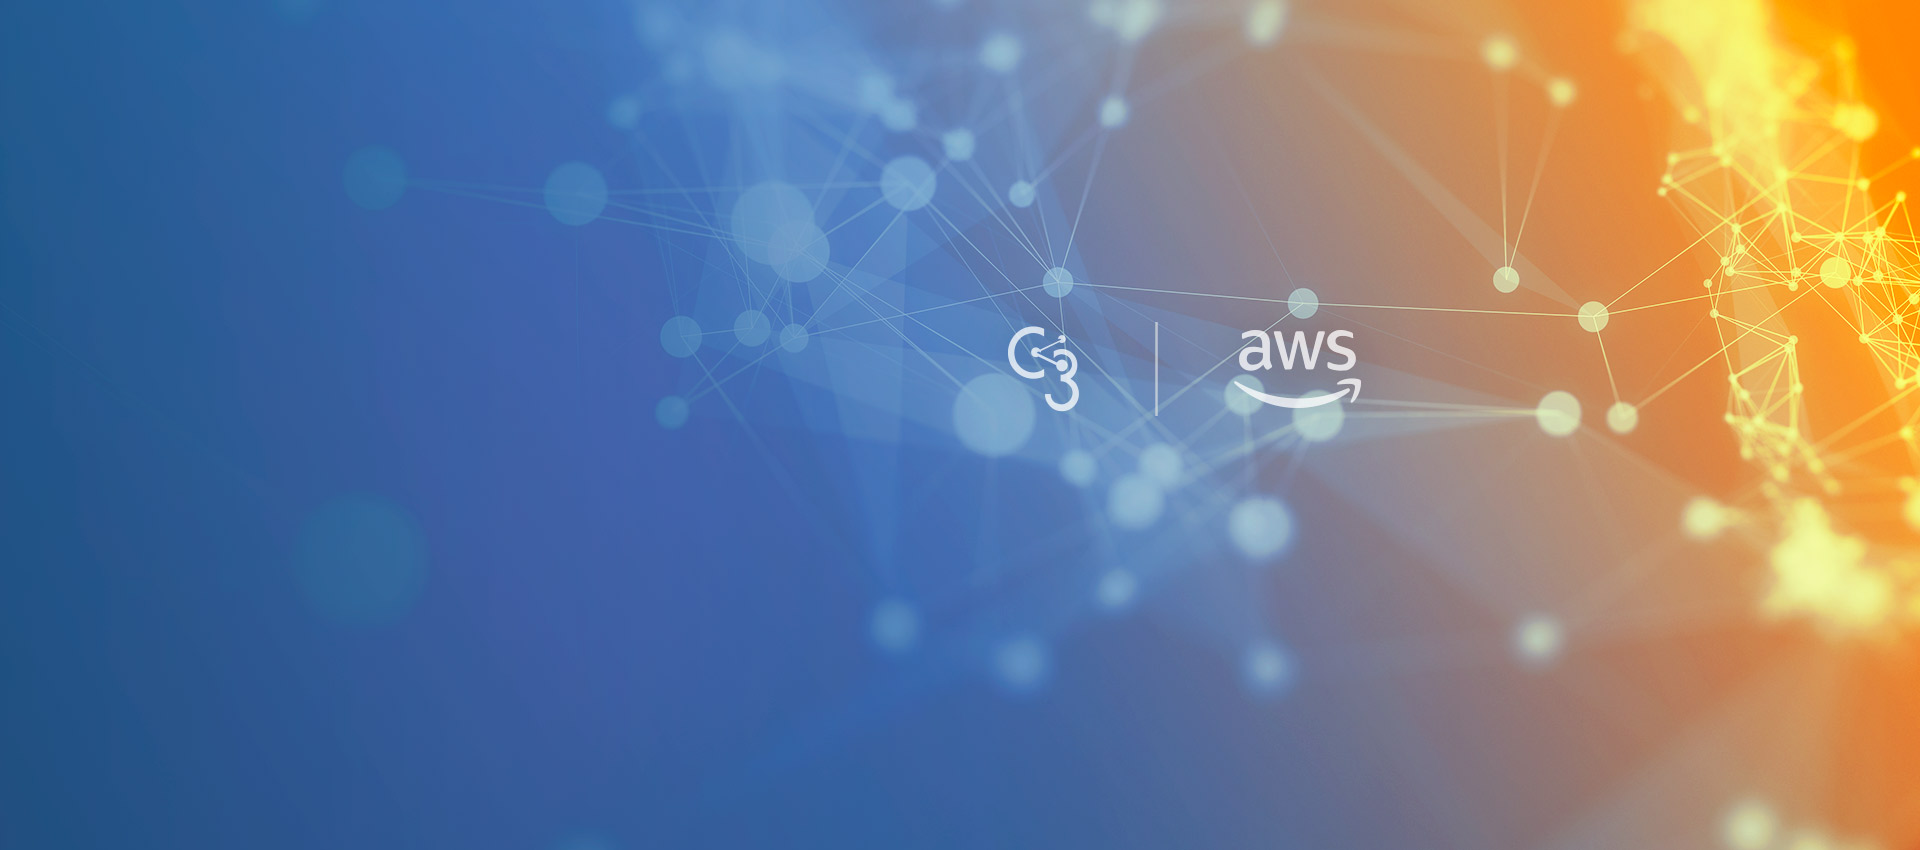 C3.ai - C3.ai and AWS Expand Collaboration to Drive Enterprise Artificial Intelligence Adoption